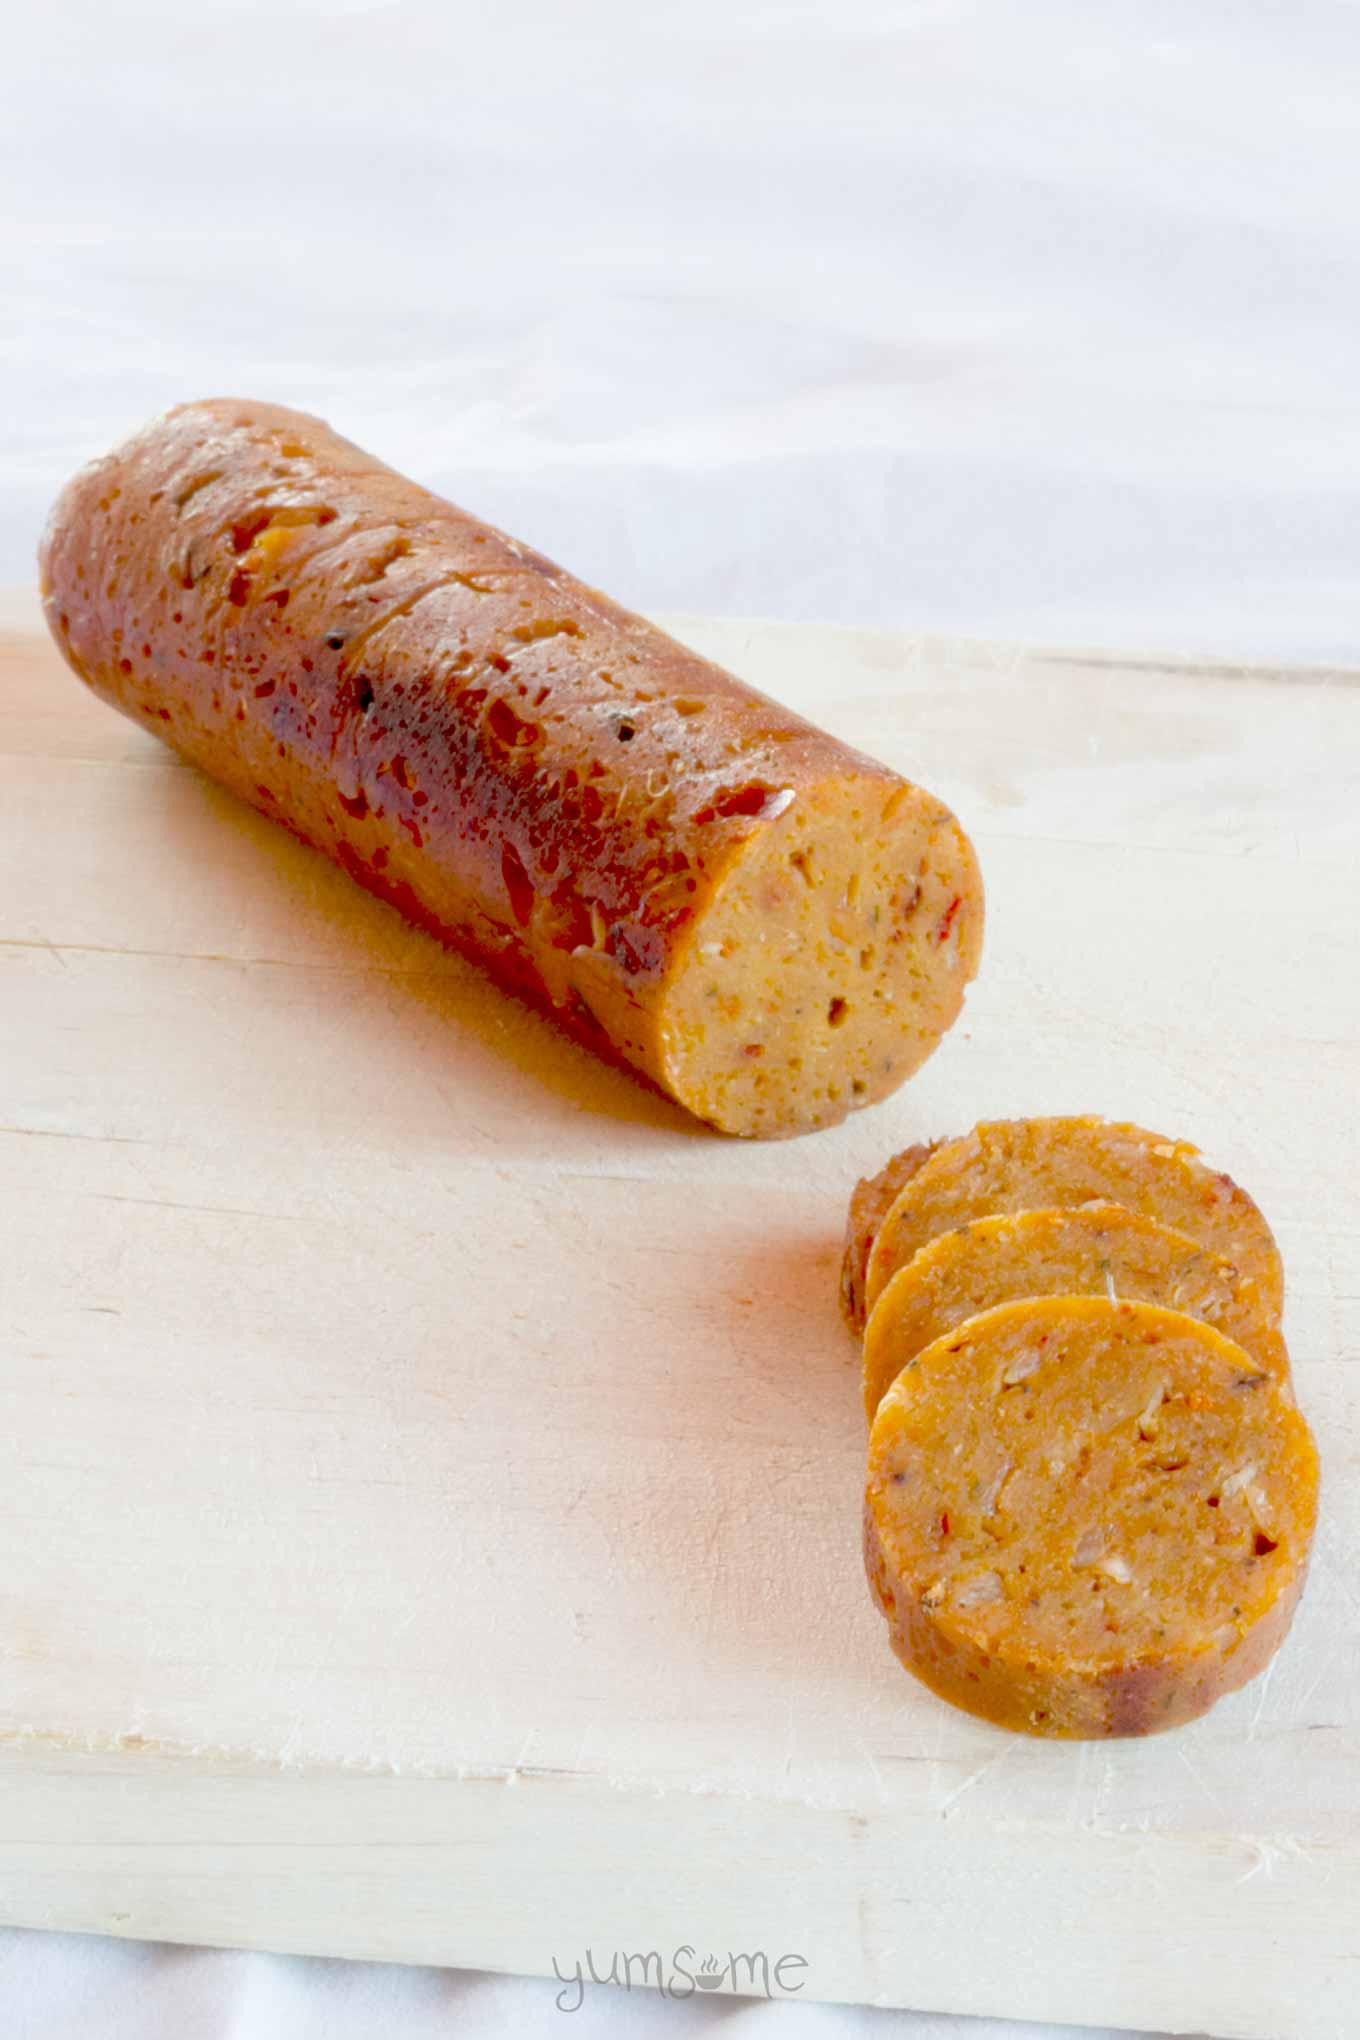 The World's Best Vegan Sausages